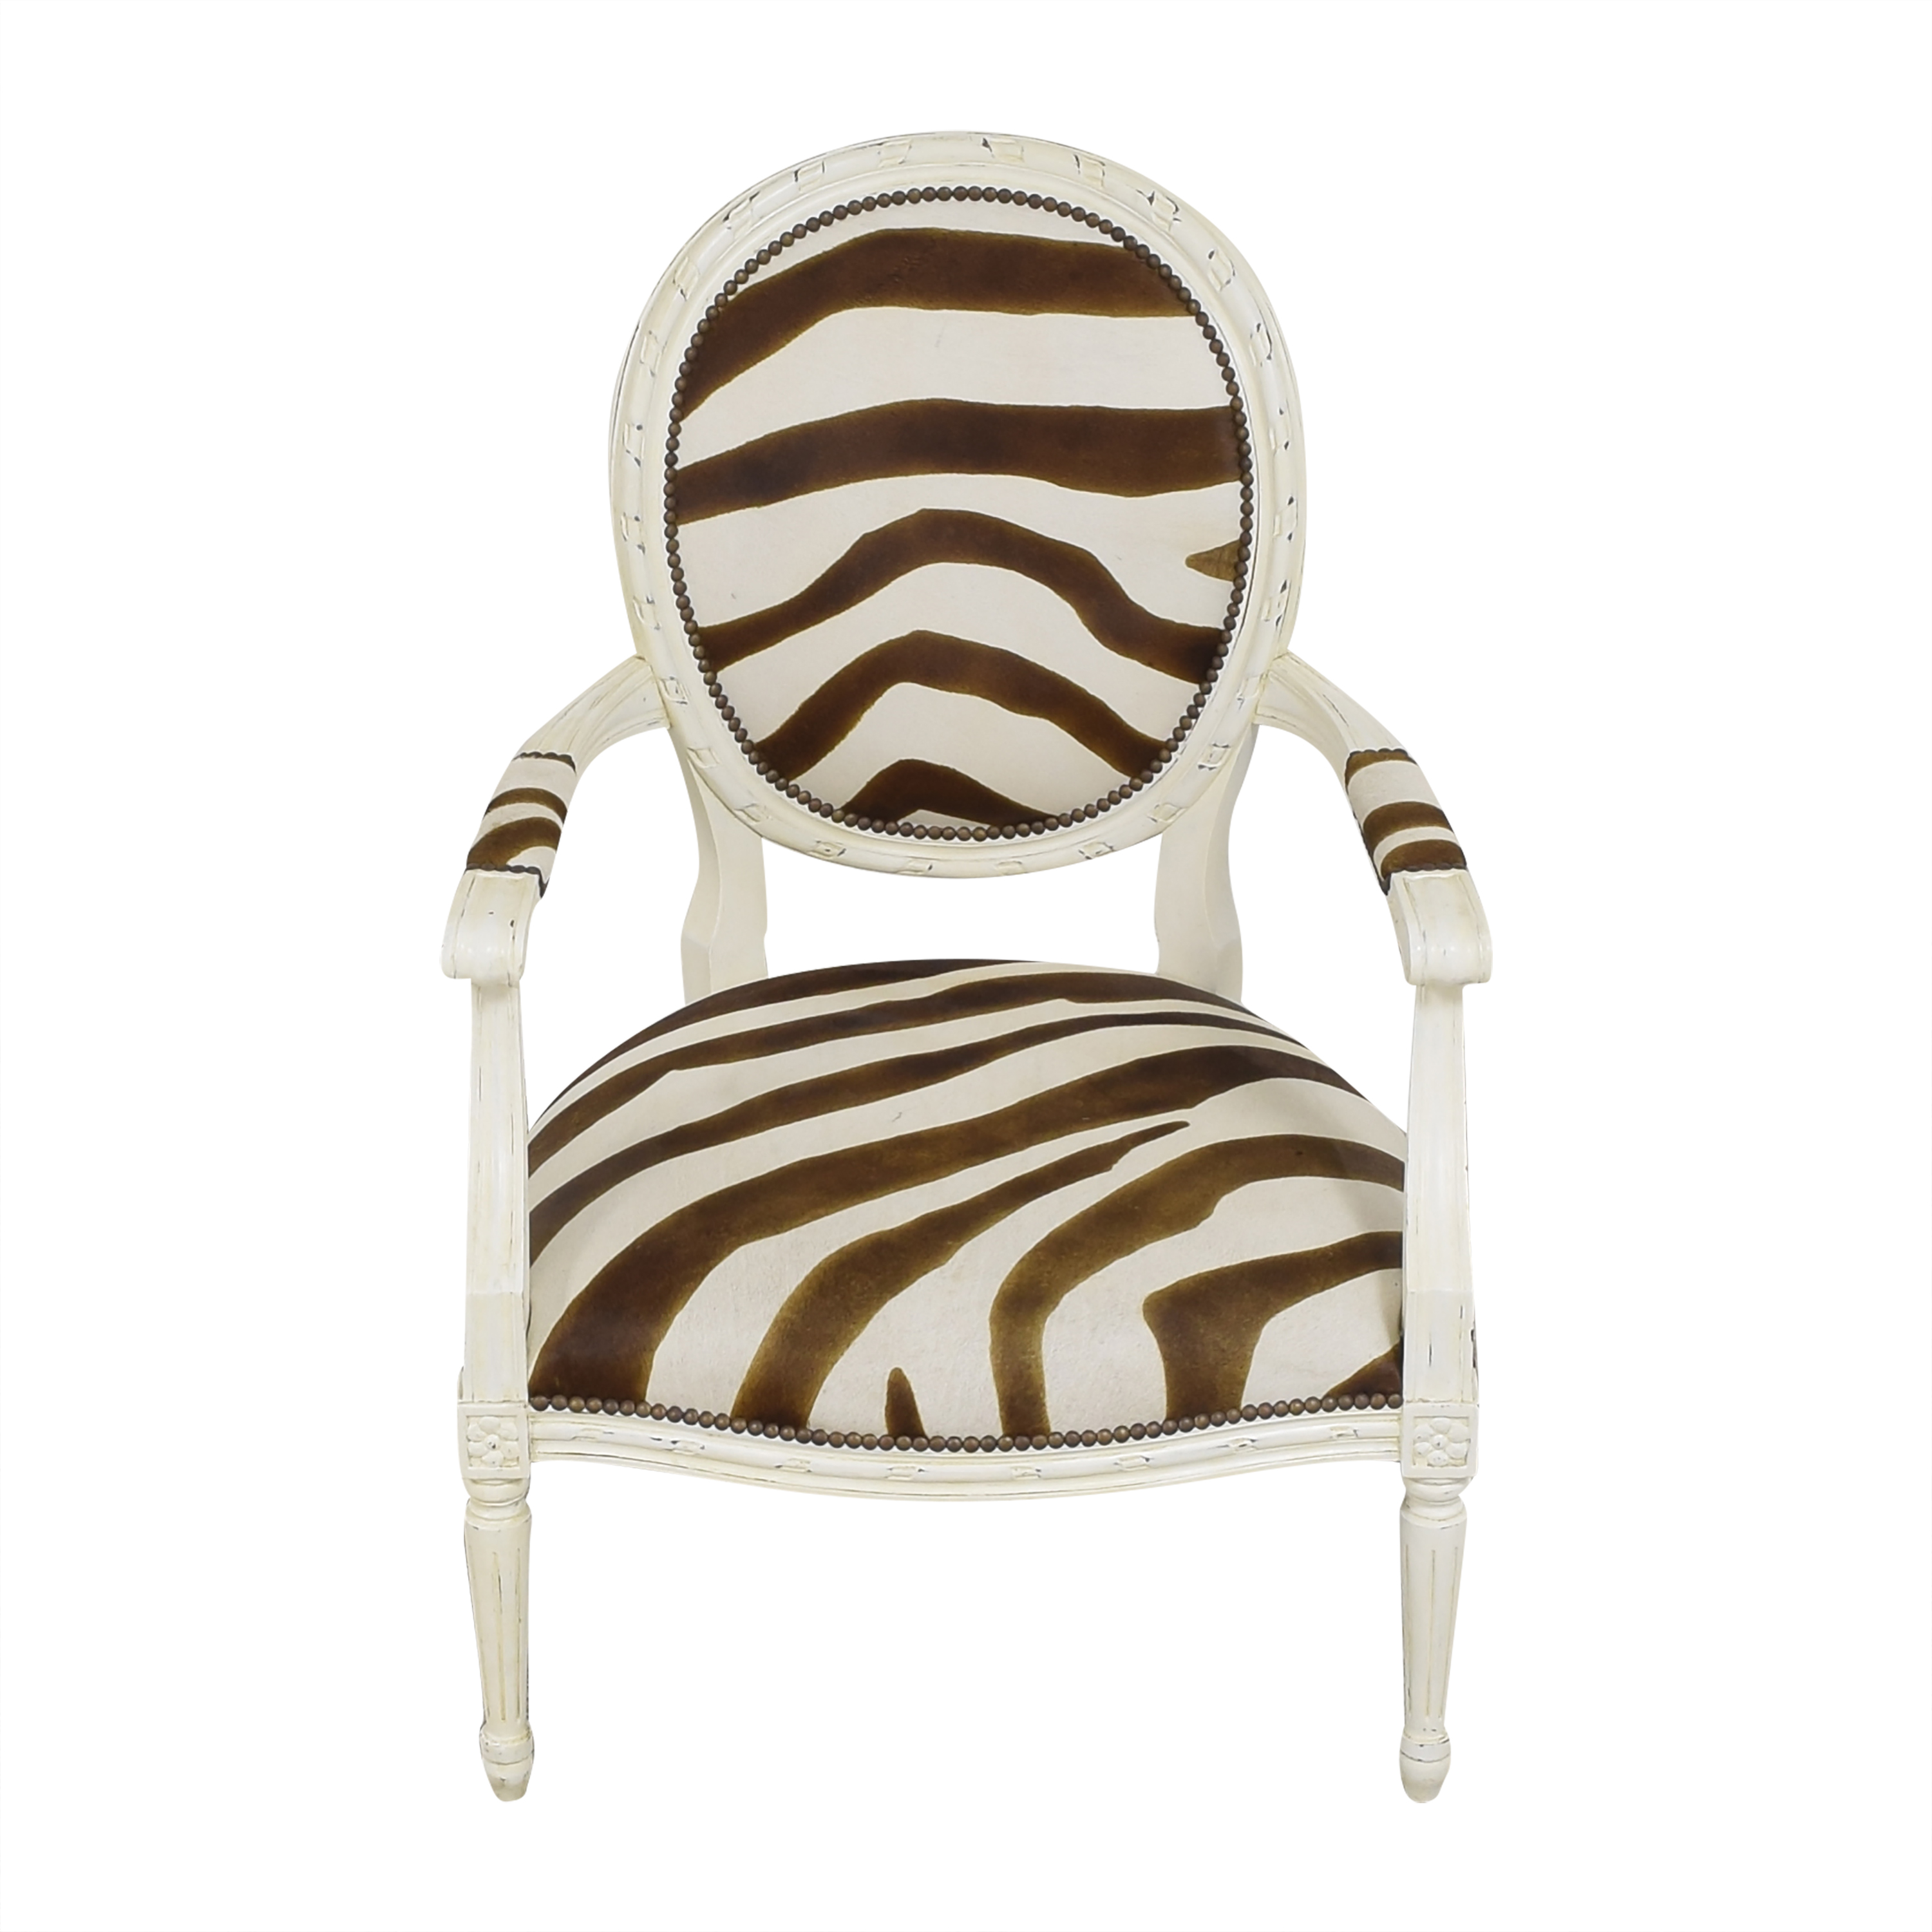 Oly Studio Oly Studio Sophie Lounge Chair pa